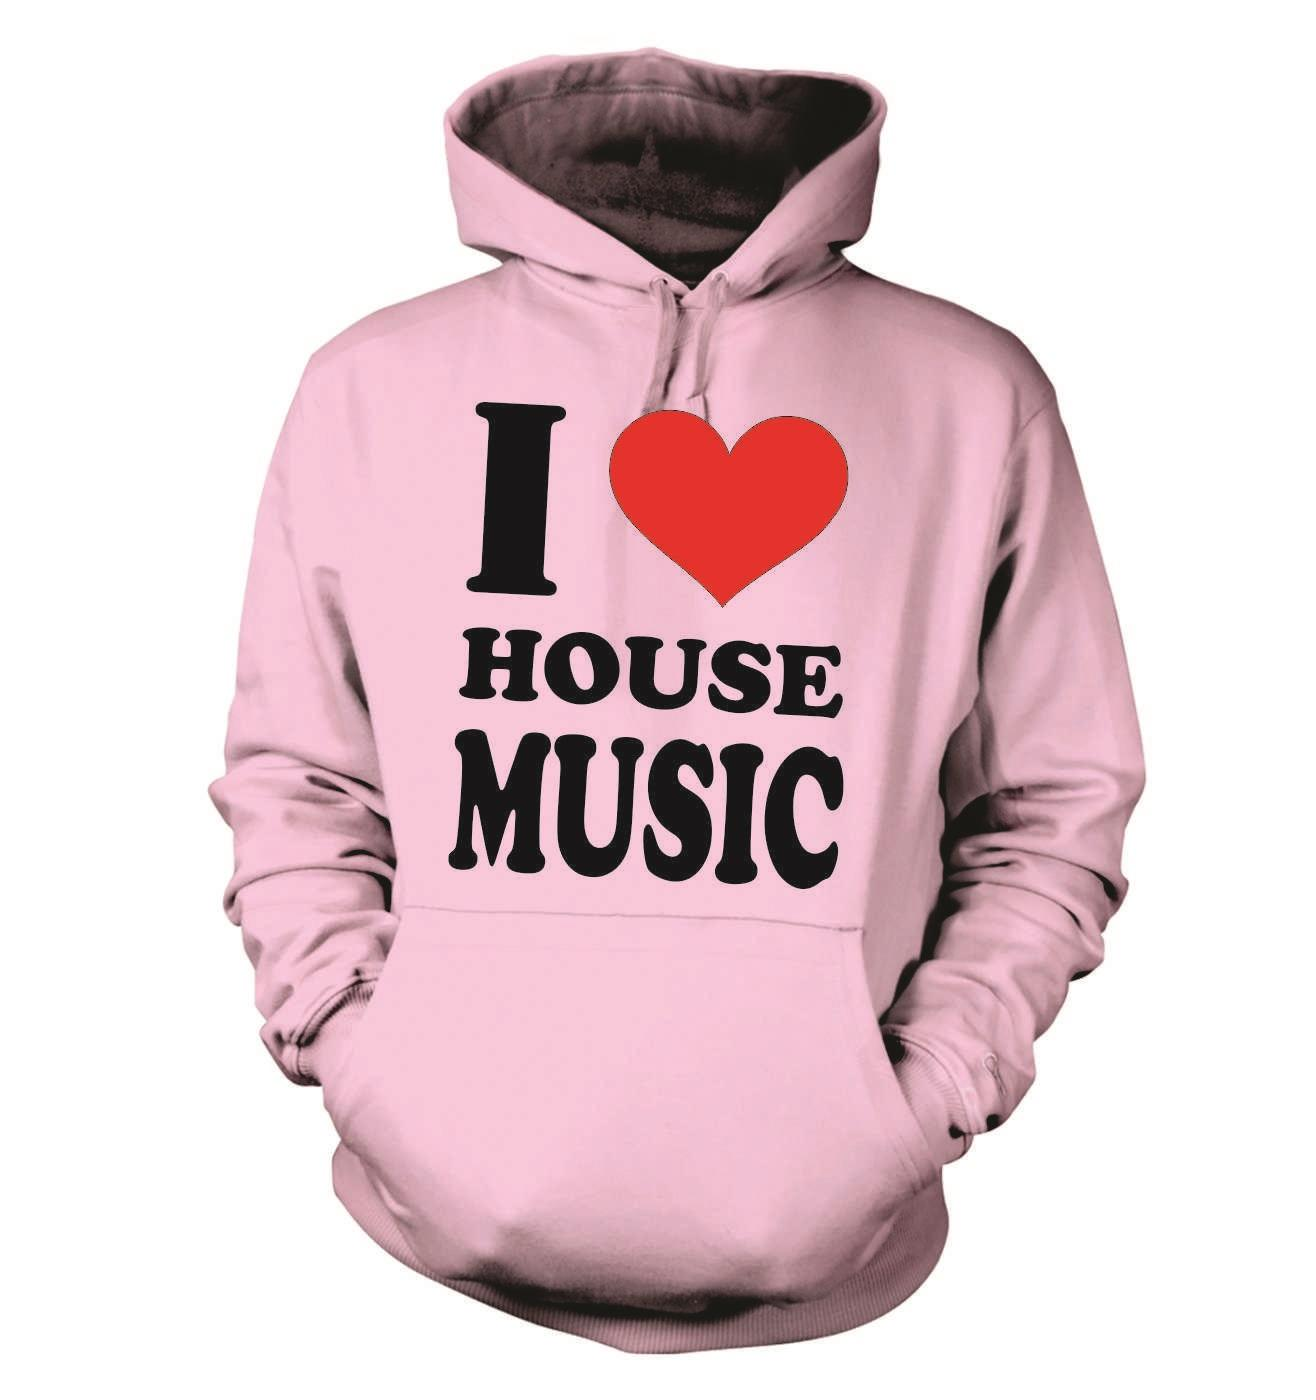 Adults-I-Love-Heart-House-Music-Unisex-Hooded-Sweatshirt-Hoody-Birthday-Music